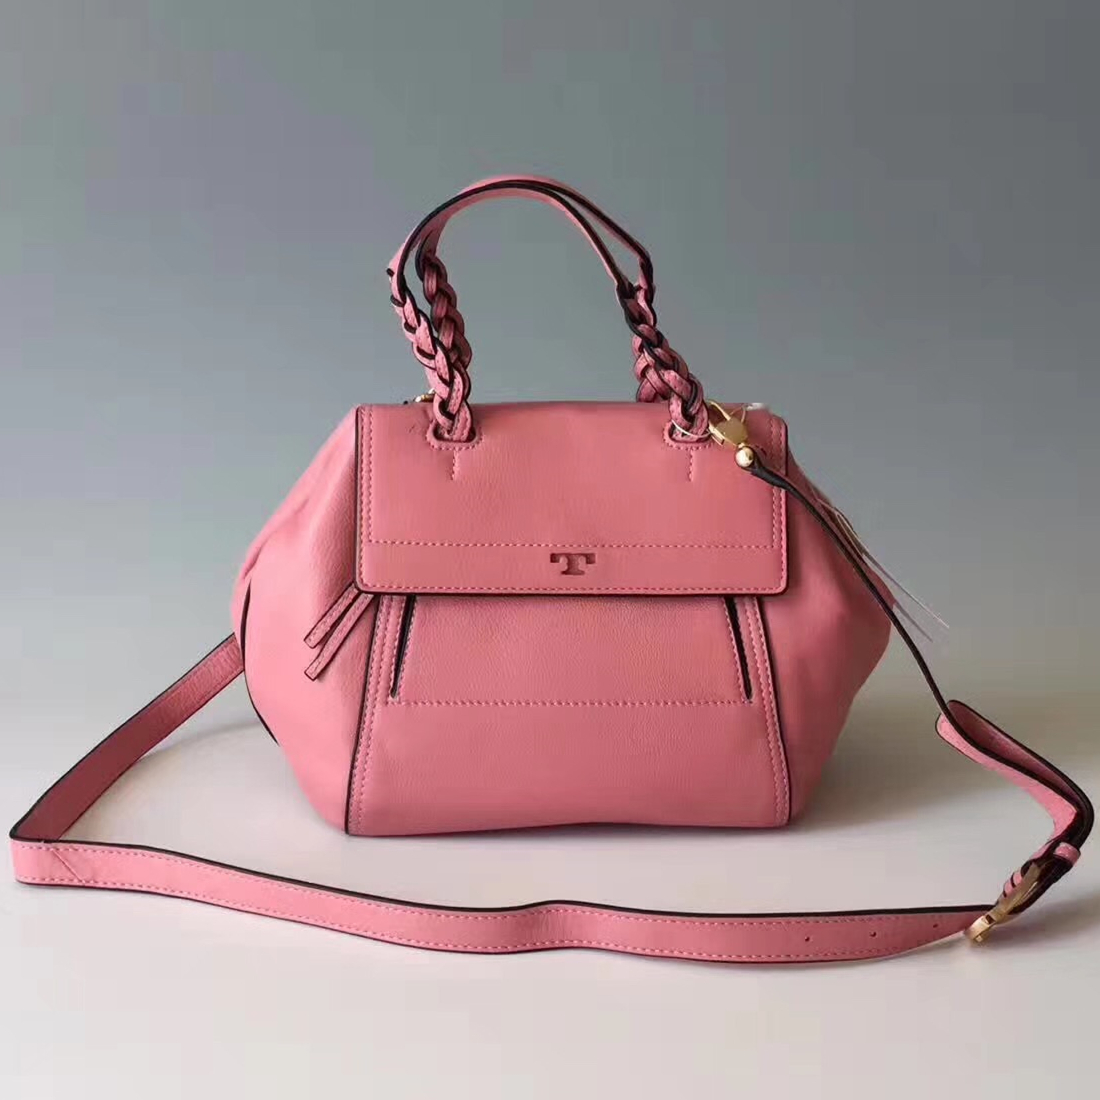 c392d8eebca NWT Tory Burch Half Moon Leather Small and 50 similar items. Img 0523